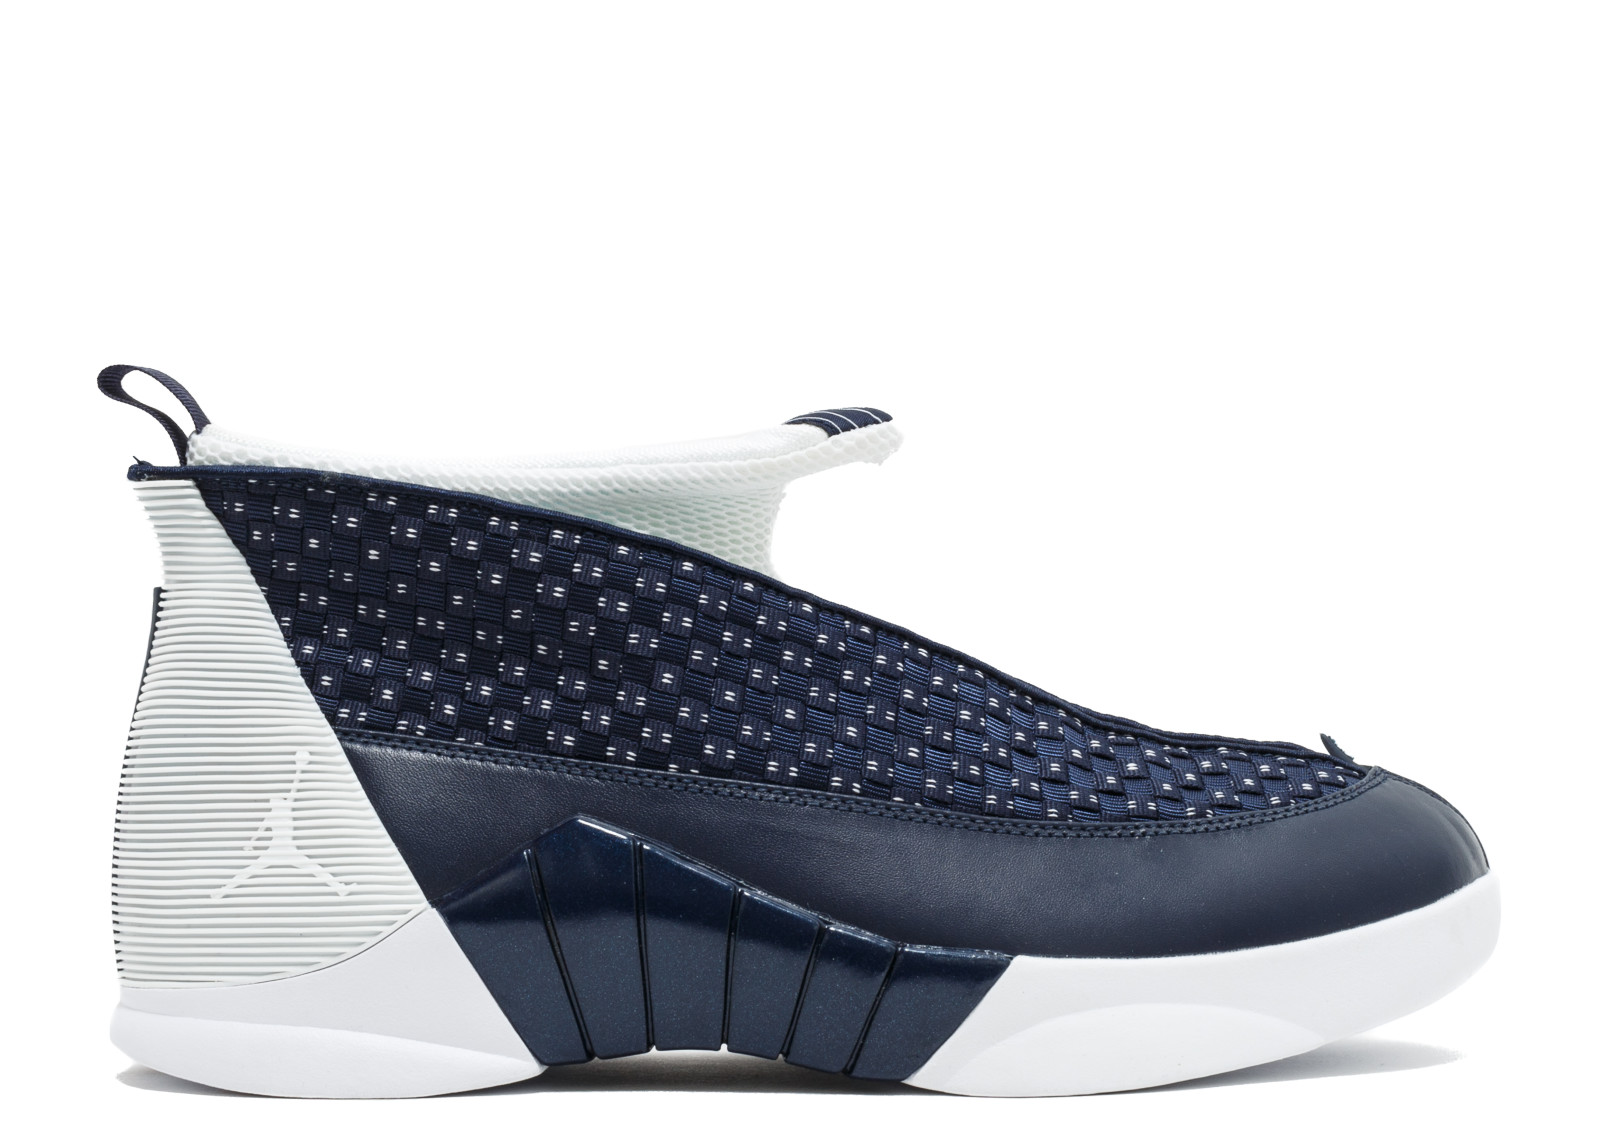 Mens Air Jordan Retro 15 XV Obsidian White Metallic Silver 881429-400 - Walmart.com